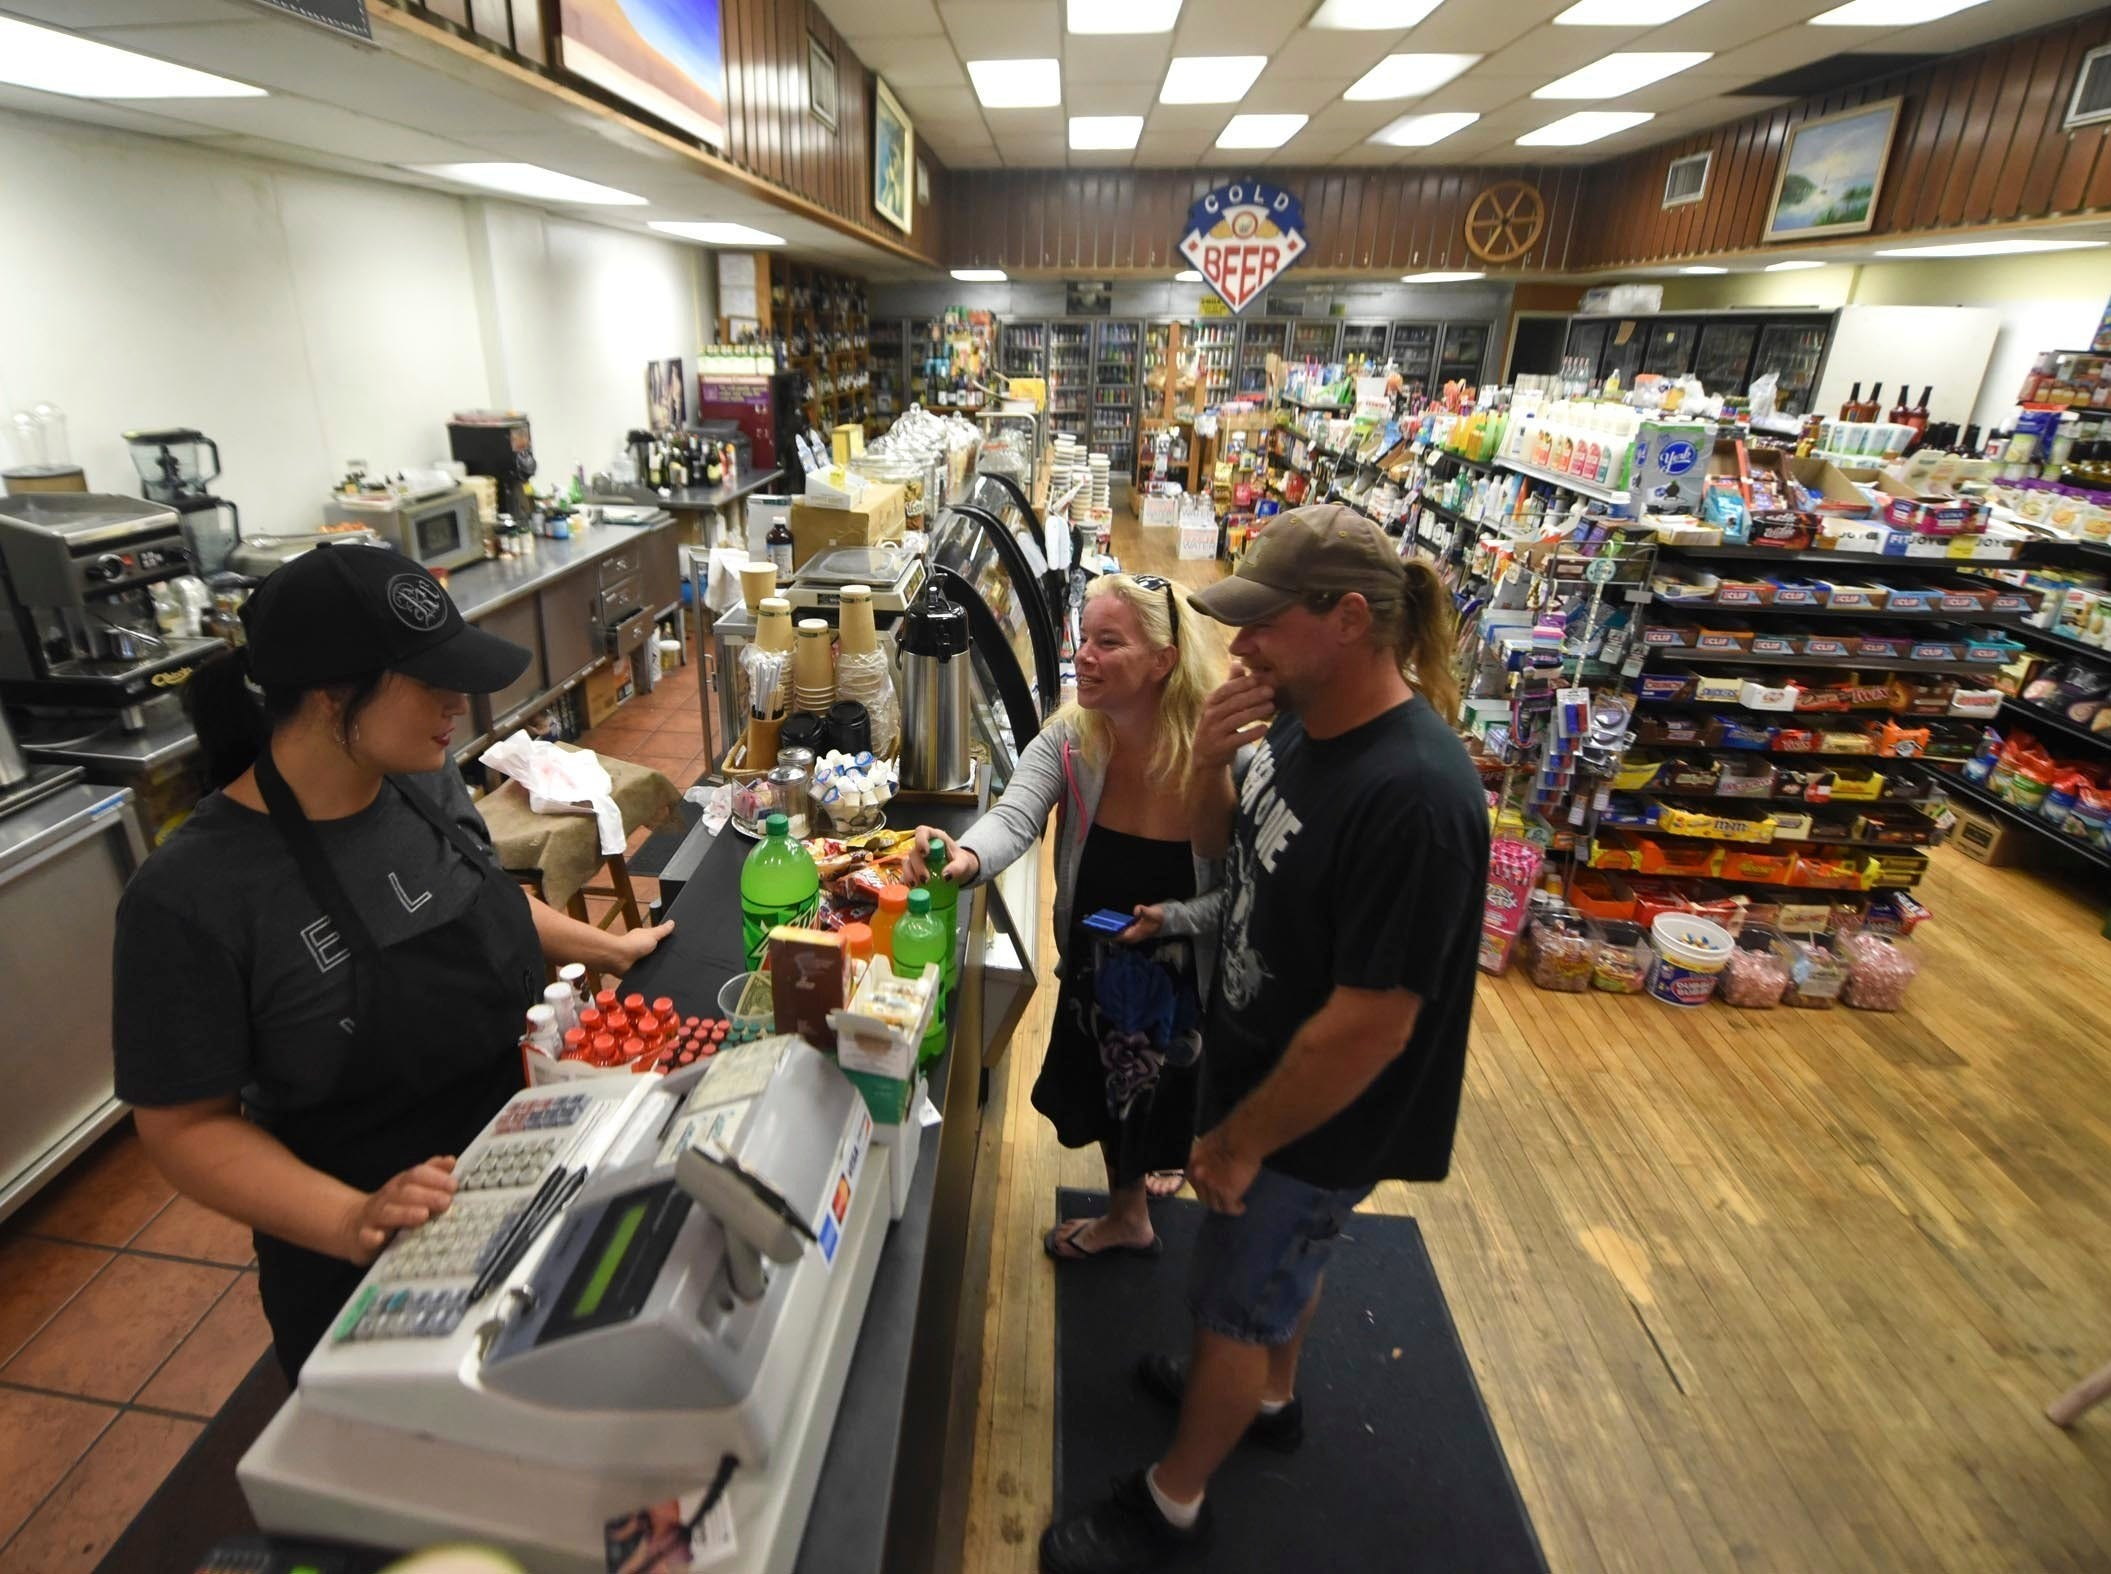 Donna Stamm, left, manager of Gourmet Market, checks out customers at the store in downtown Wilmington, N.C., ahead of Hurricane Florence, Thursday, Sept.  13, 2018. Stamm lives downtown and was planning on staying open as long as possible.  (Matt Born/The Star-News via AP)